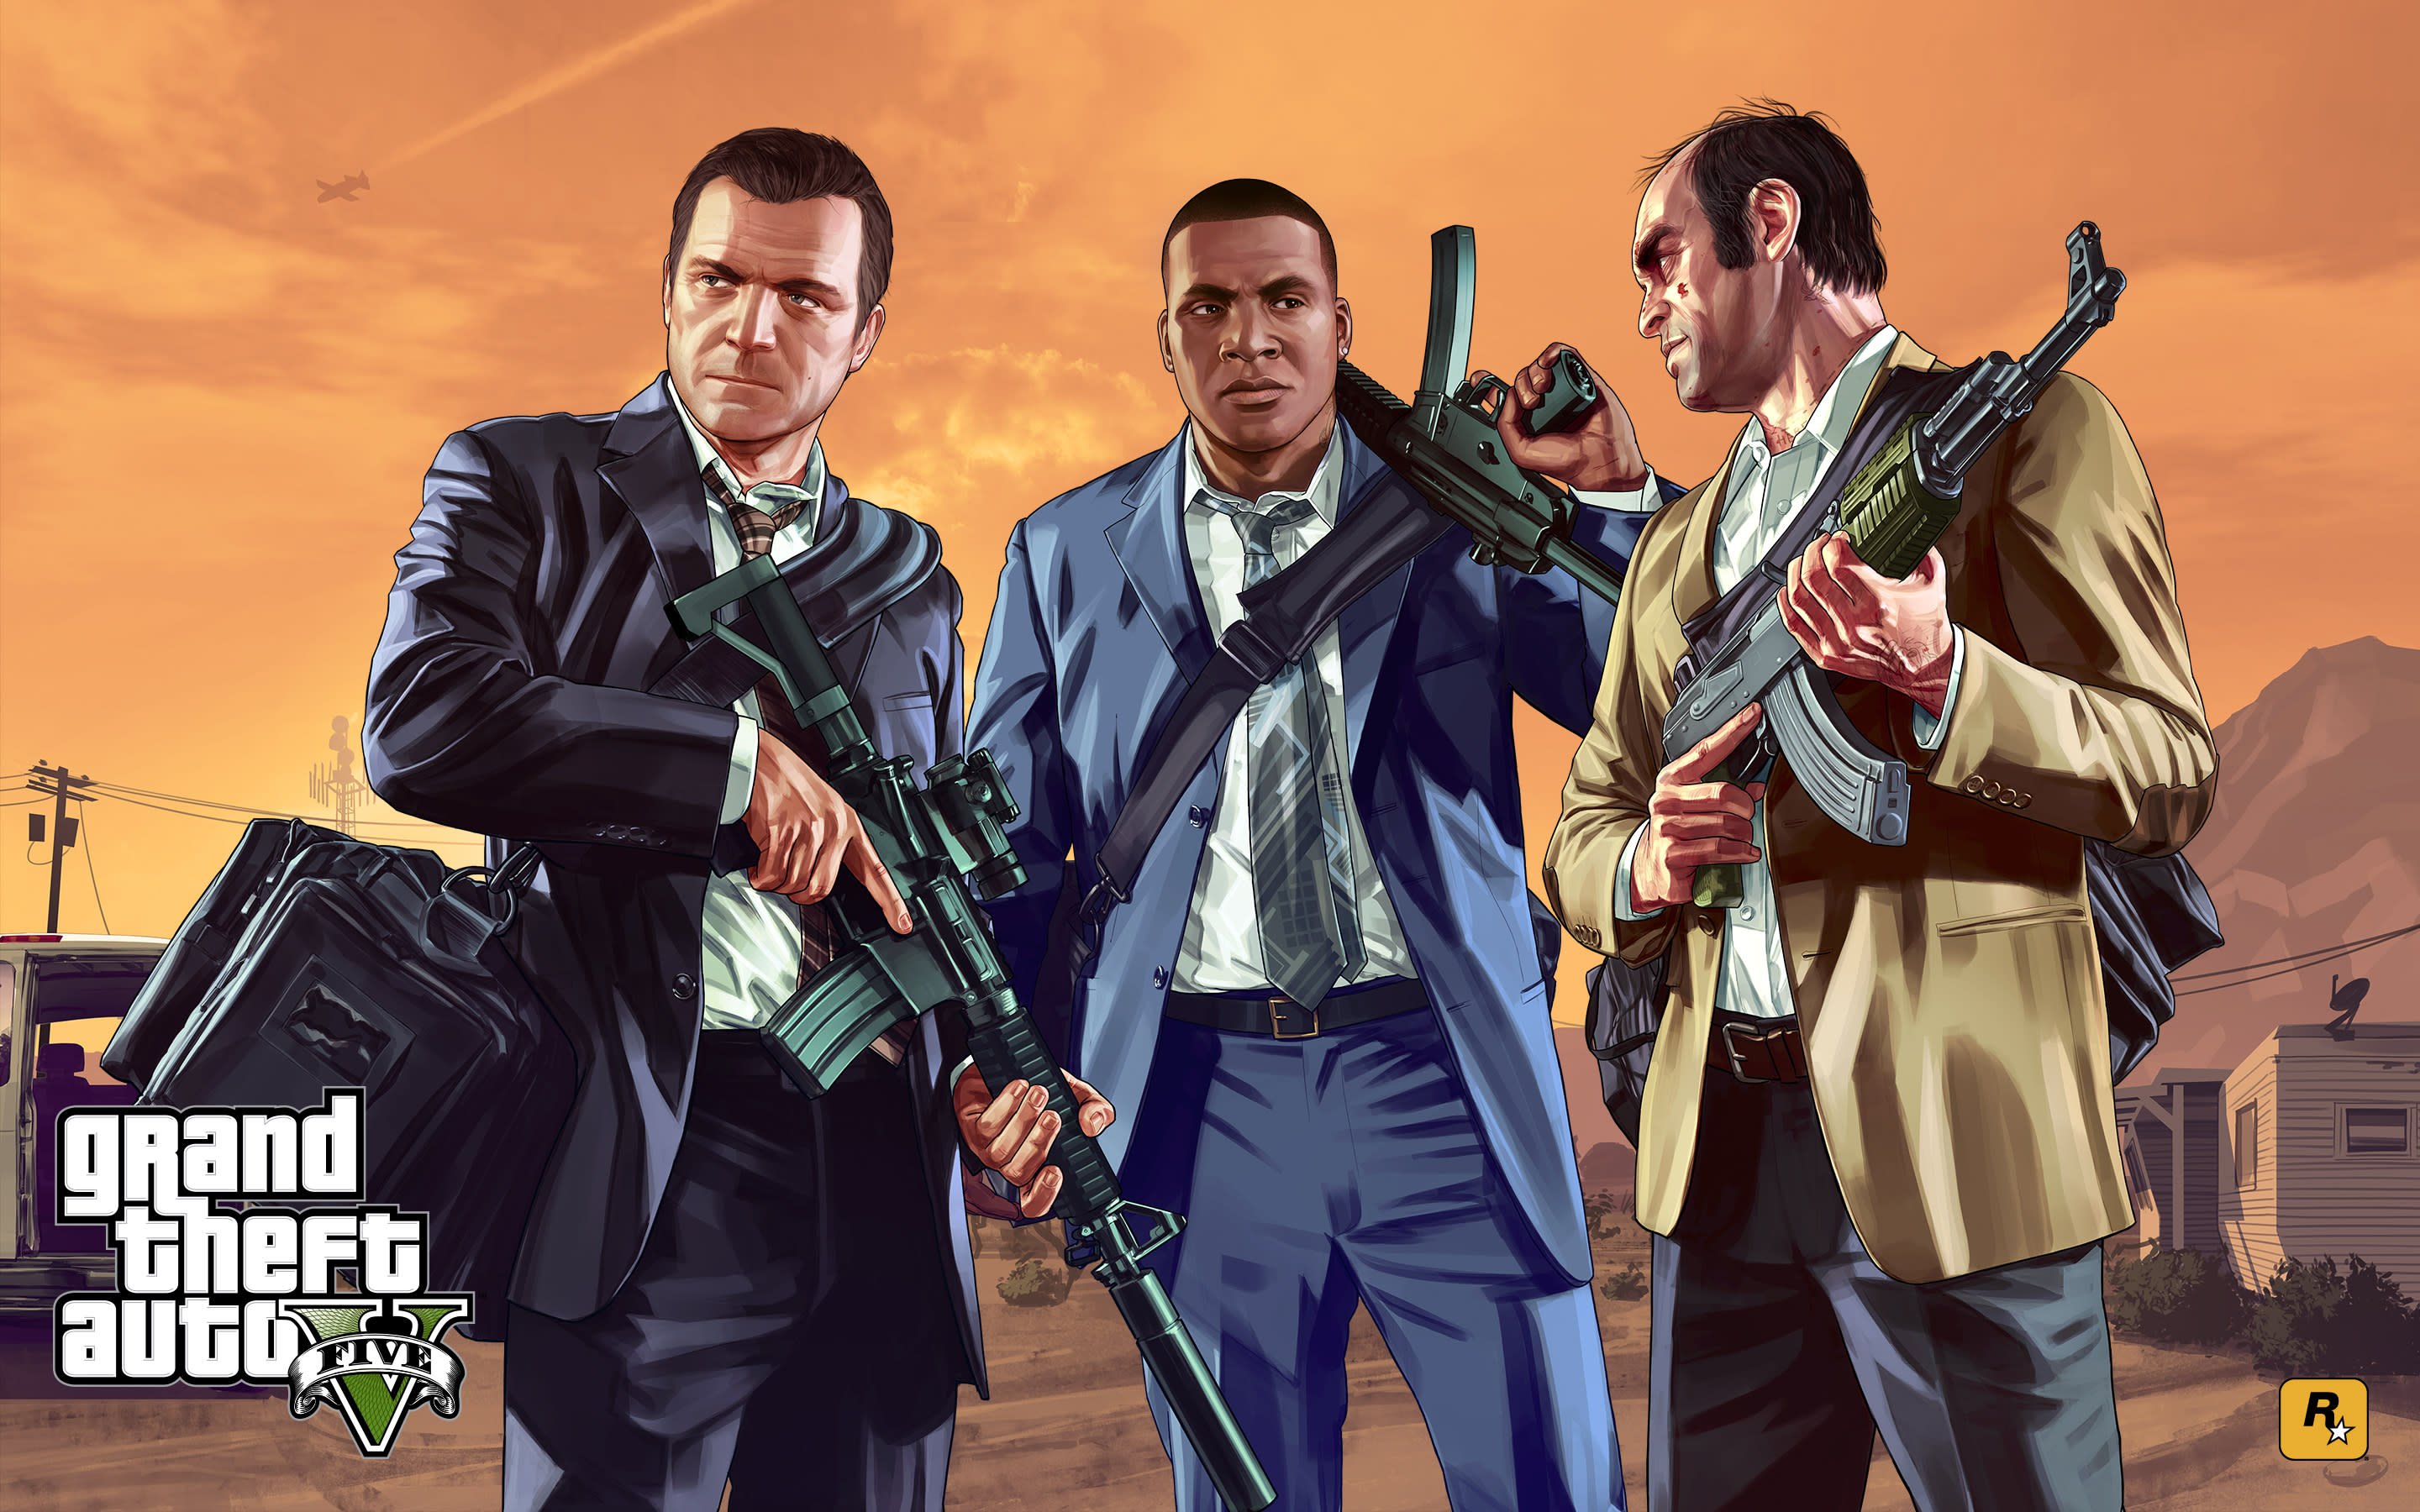 Take-Two SEC filing hints at Grand Theft Auto 6 in 2023